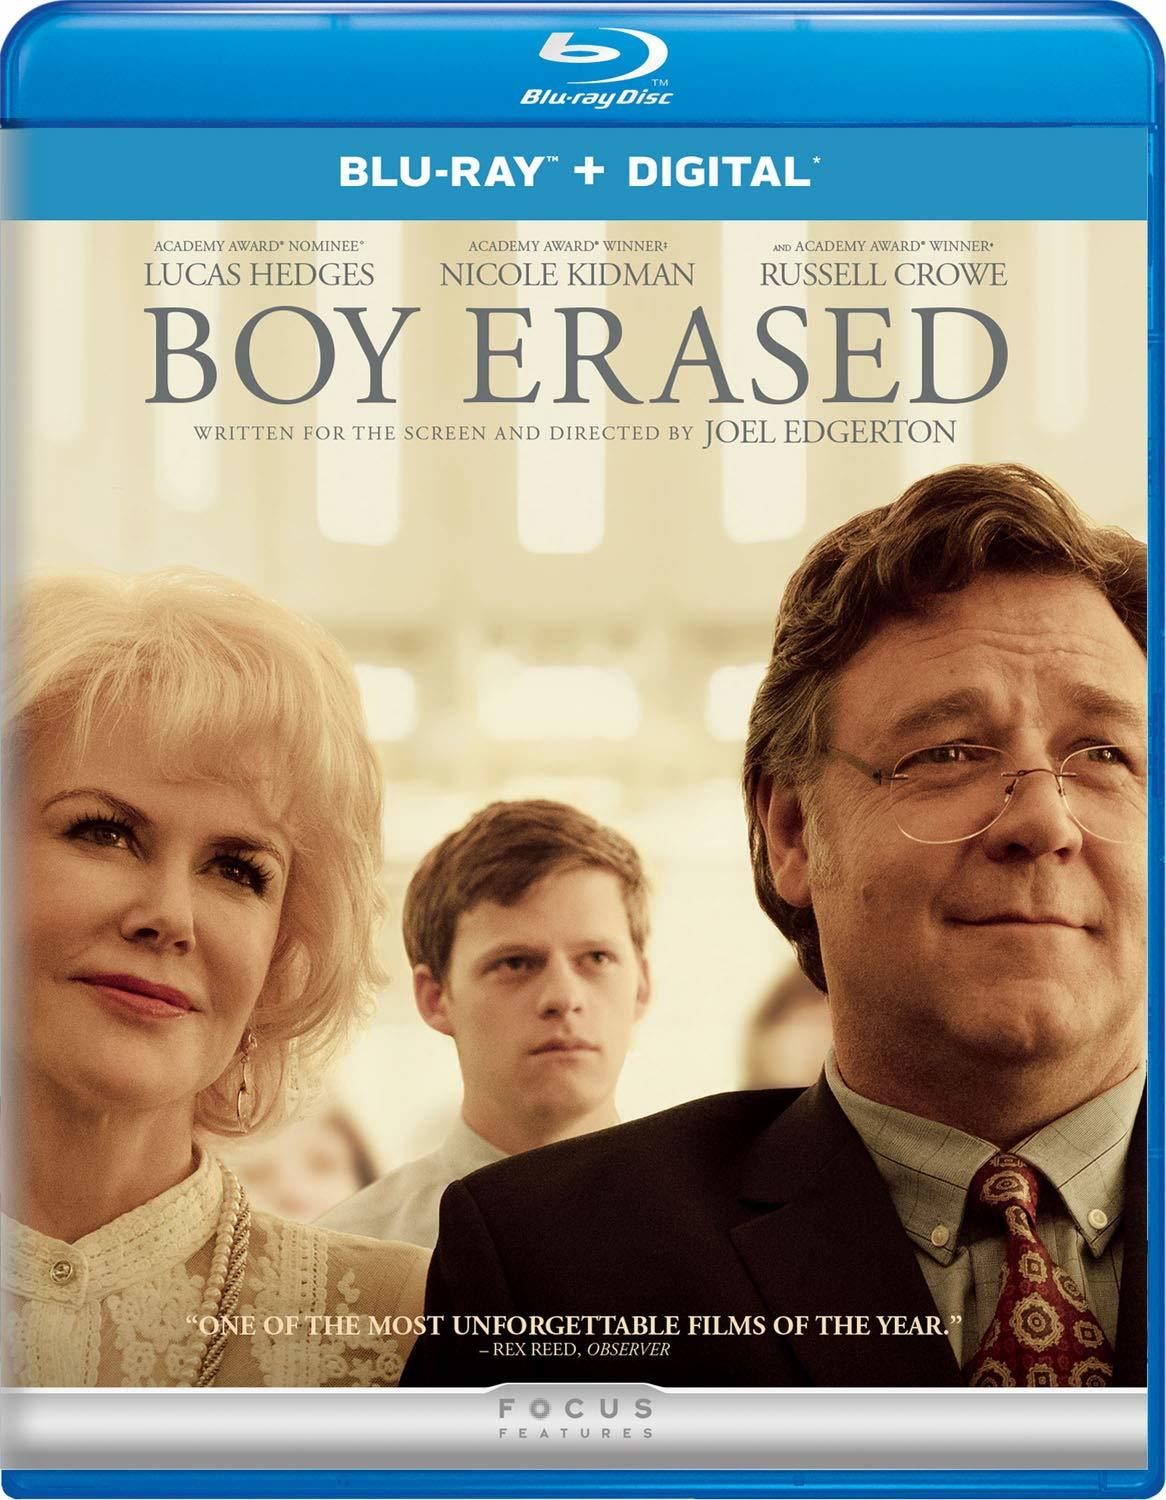 Boy Erased (2018) poster image